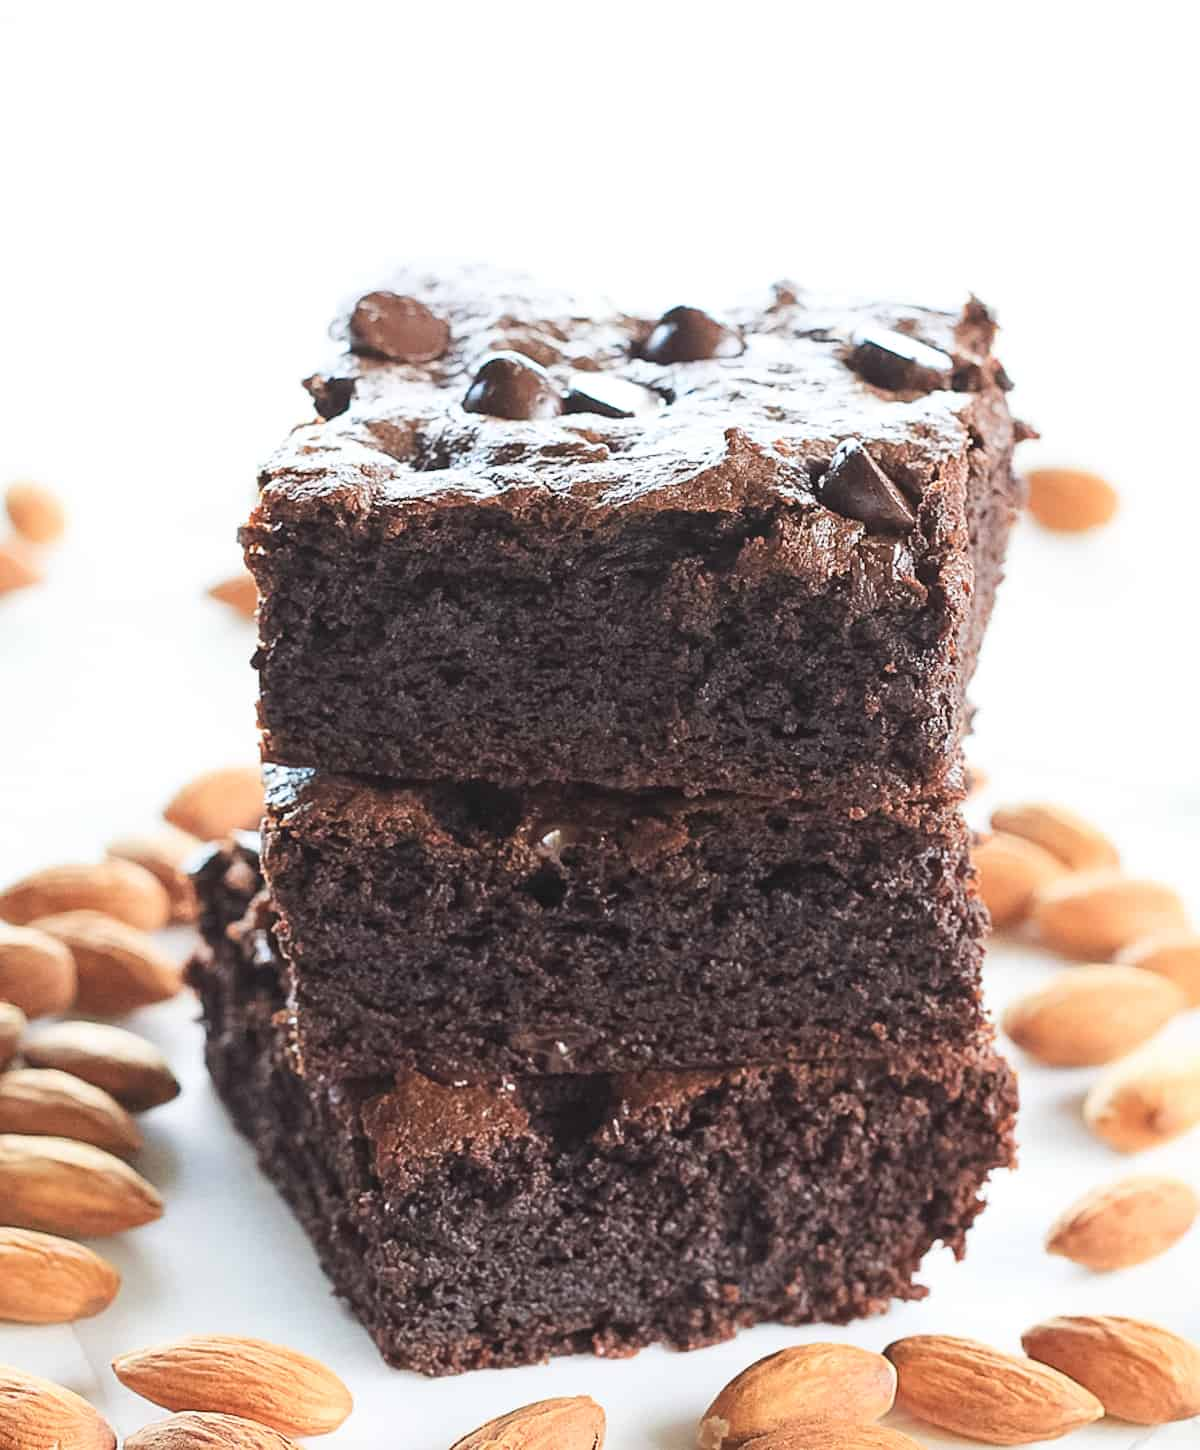 Stack of three healthy chocolate brownies.